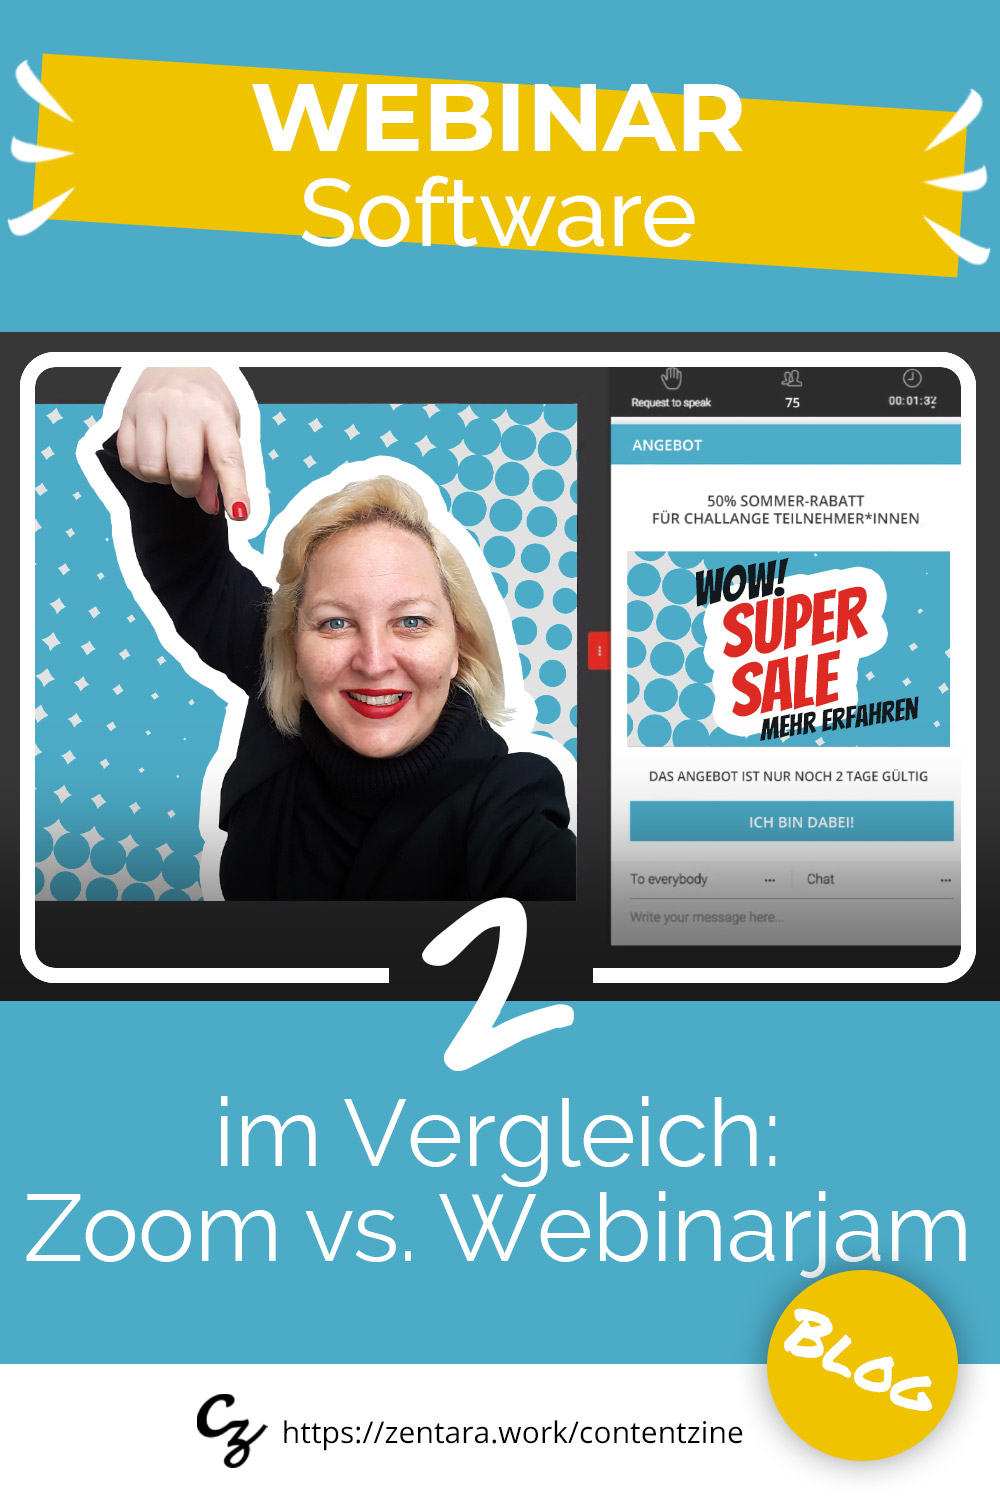 Webinar-Software für Sales & Marketing: Zoom vs. WebinarJam